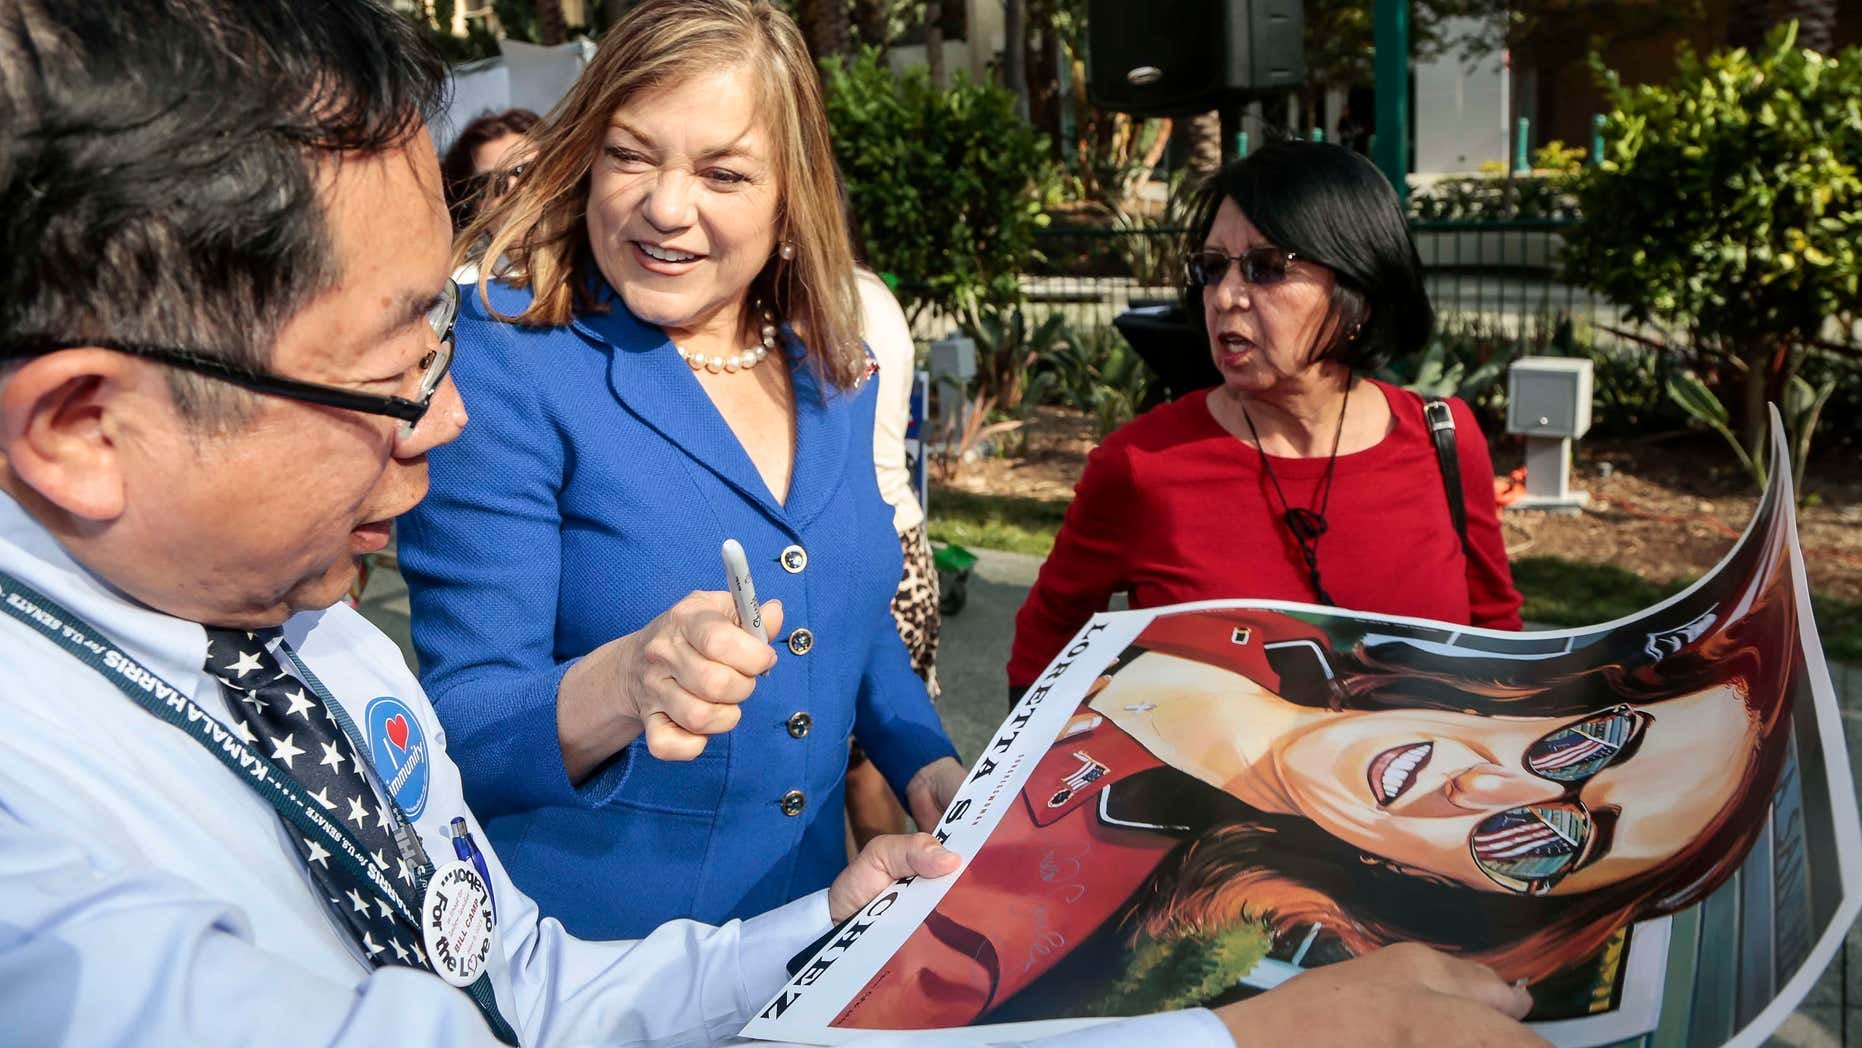 May 16, 2015: California Rep. Loretta Sanchez, second from left, autographs a California Senate race campaign poster to an unidentified supporter at the California Democrats State Convention in Anaheim, Calif.